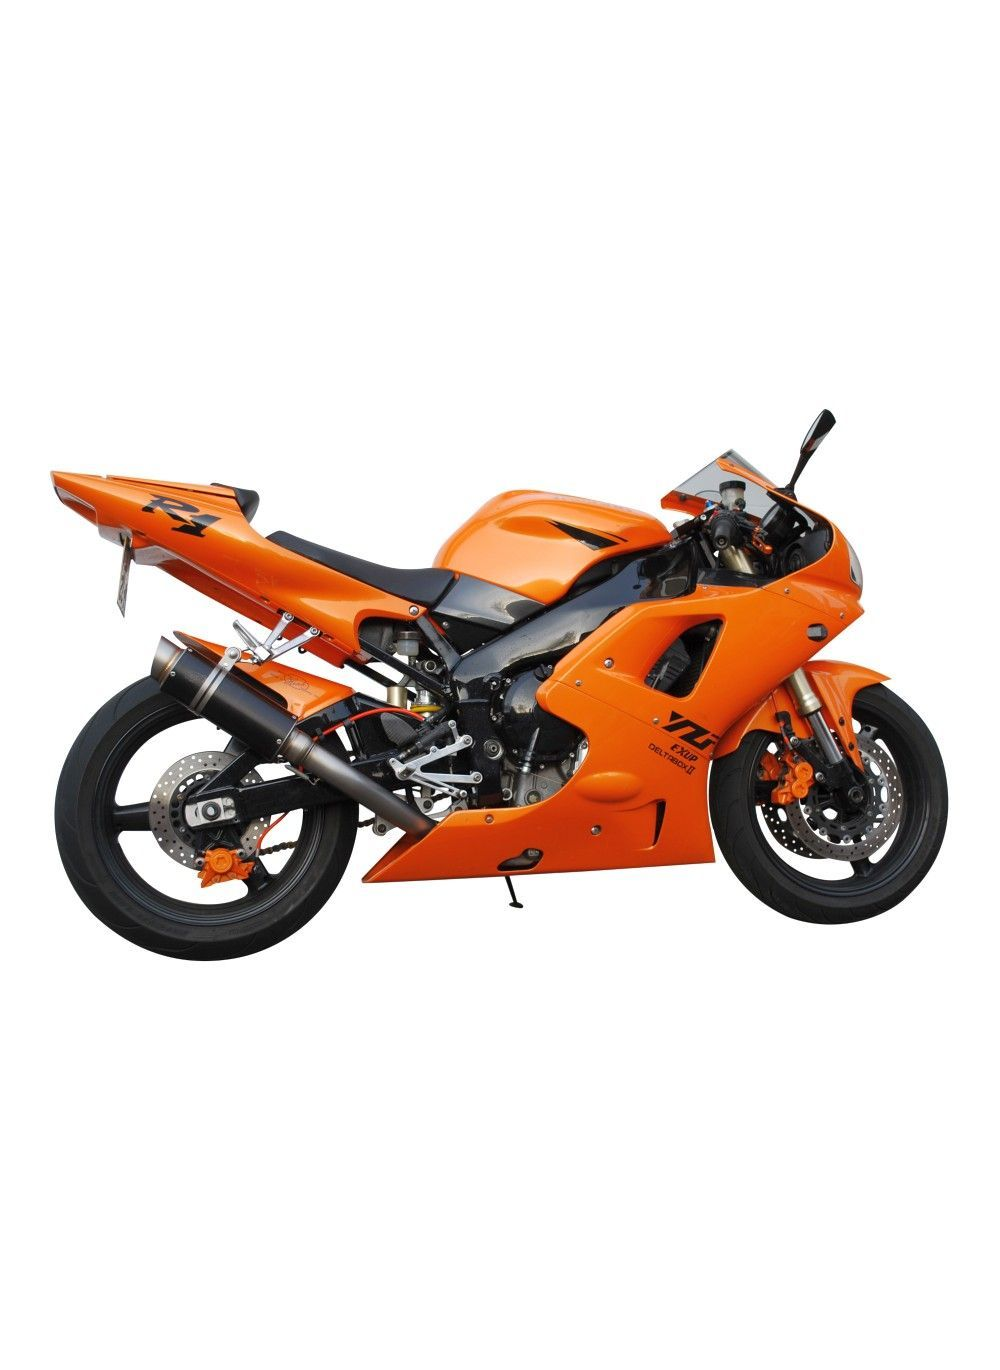 G g moto2 uitlaat yzf 1000 r1 98 01 for 01 yamaha r1